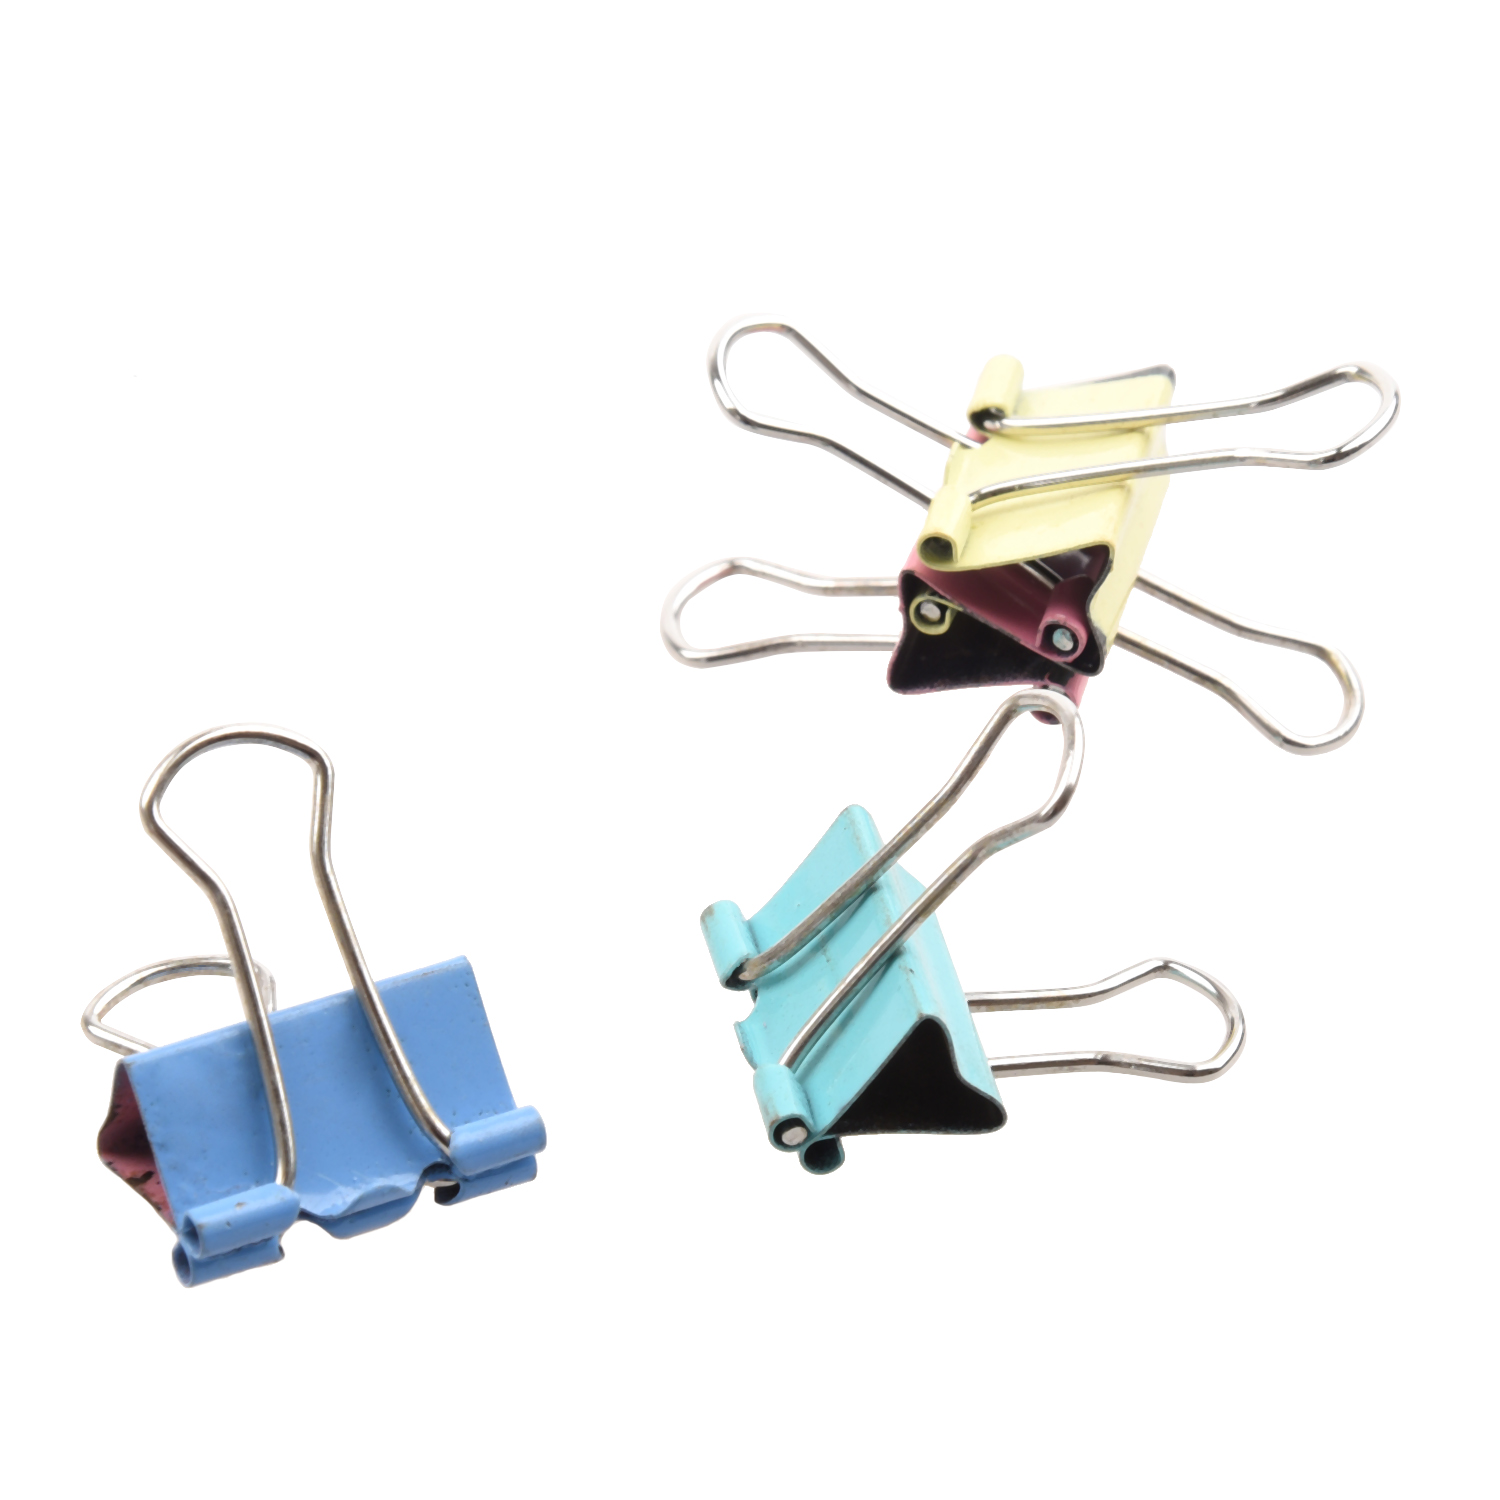 PPYY NEW -40pcs 19mm Colored Binder Clips Home Office School Teacher